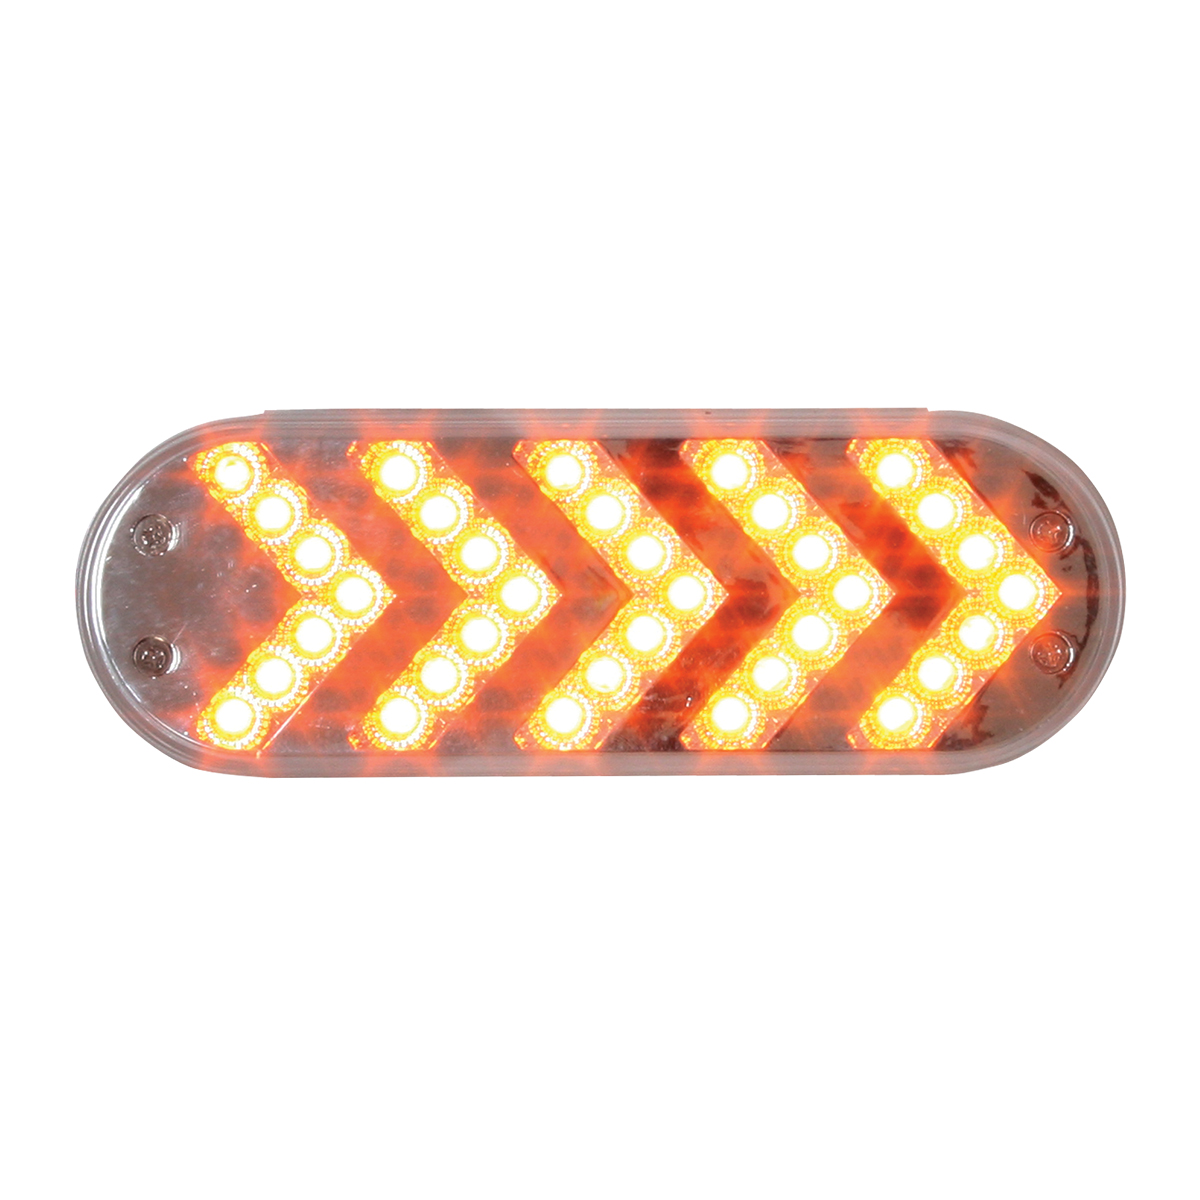 77125 Oval Sequential Arrow Spyder LED Light in Amber/Clear